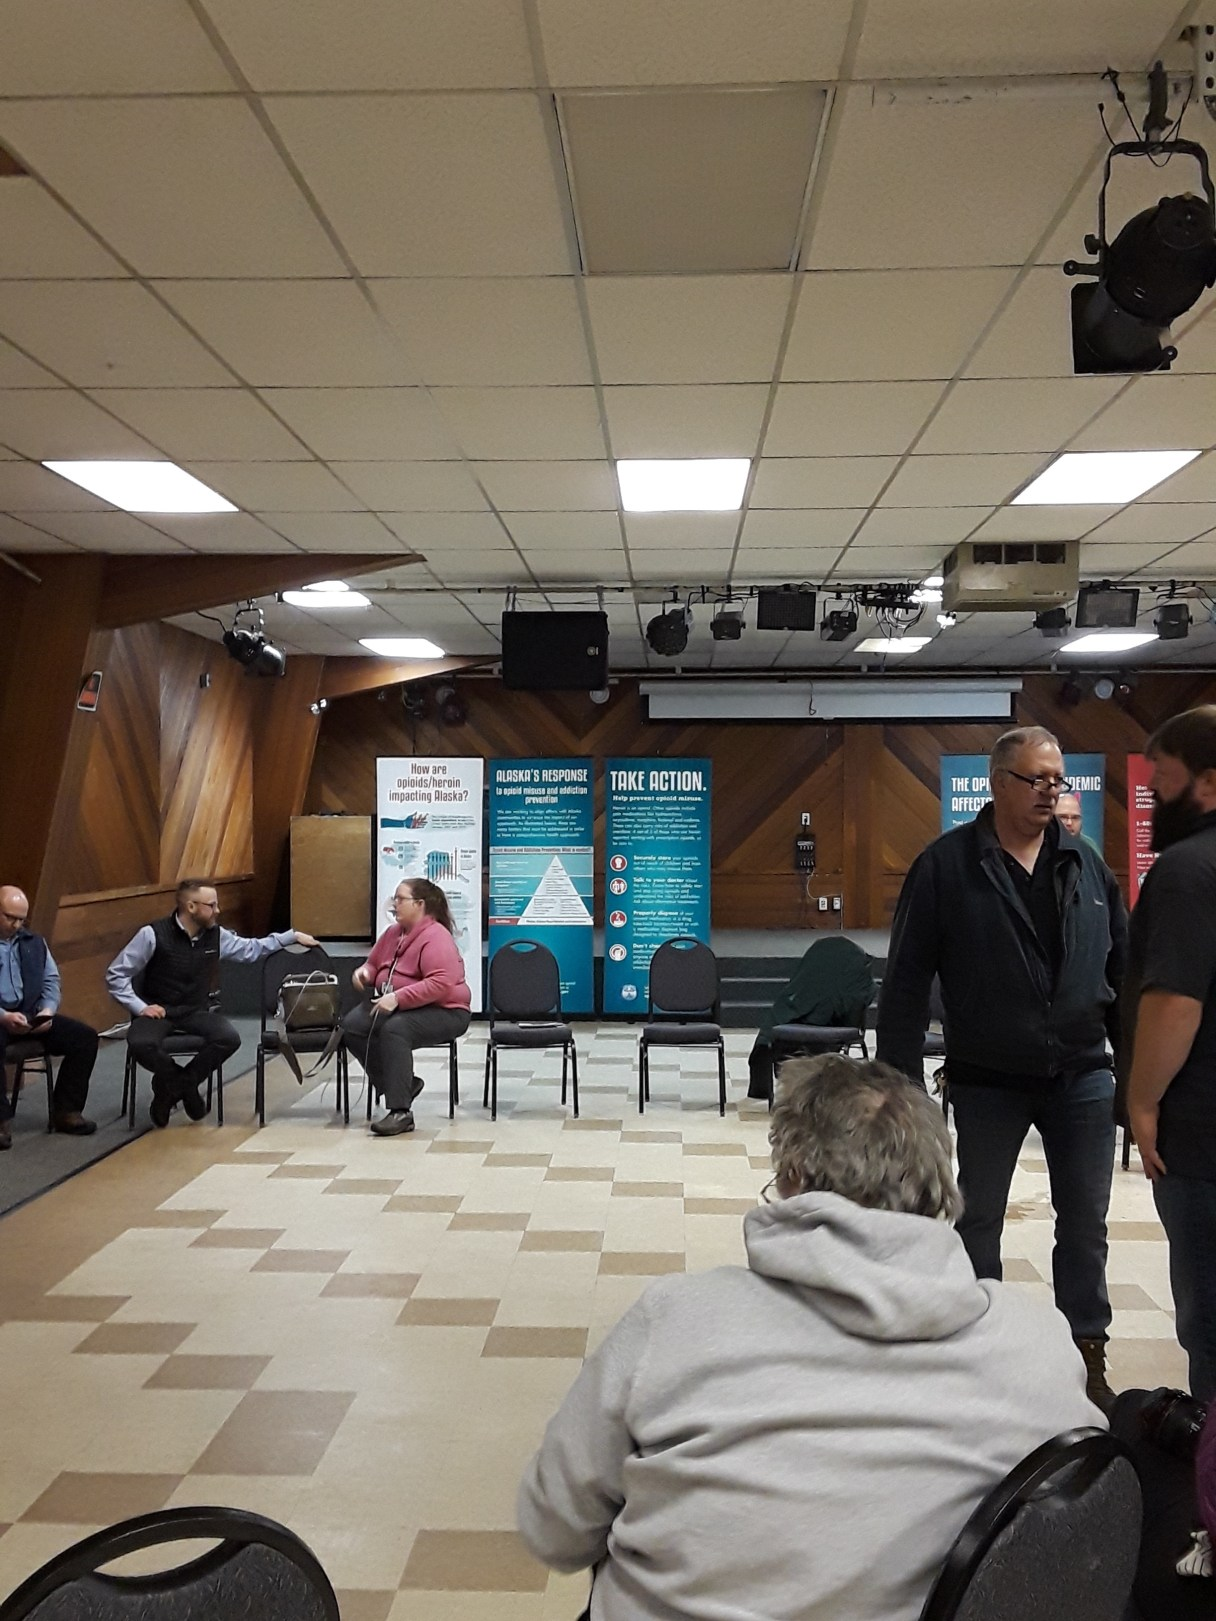 The Office of Substance Misuse and Addiction Prevention hosted a town hall meeting in Nome about the opioid epidemic. Photo Credit: Davis Hovey, KNOM (2018)